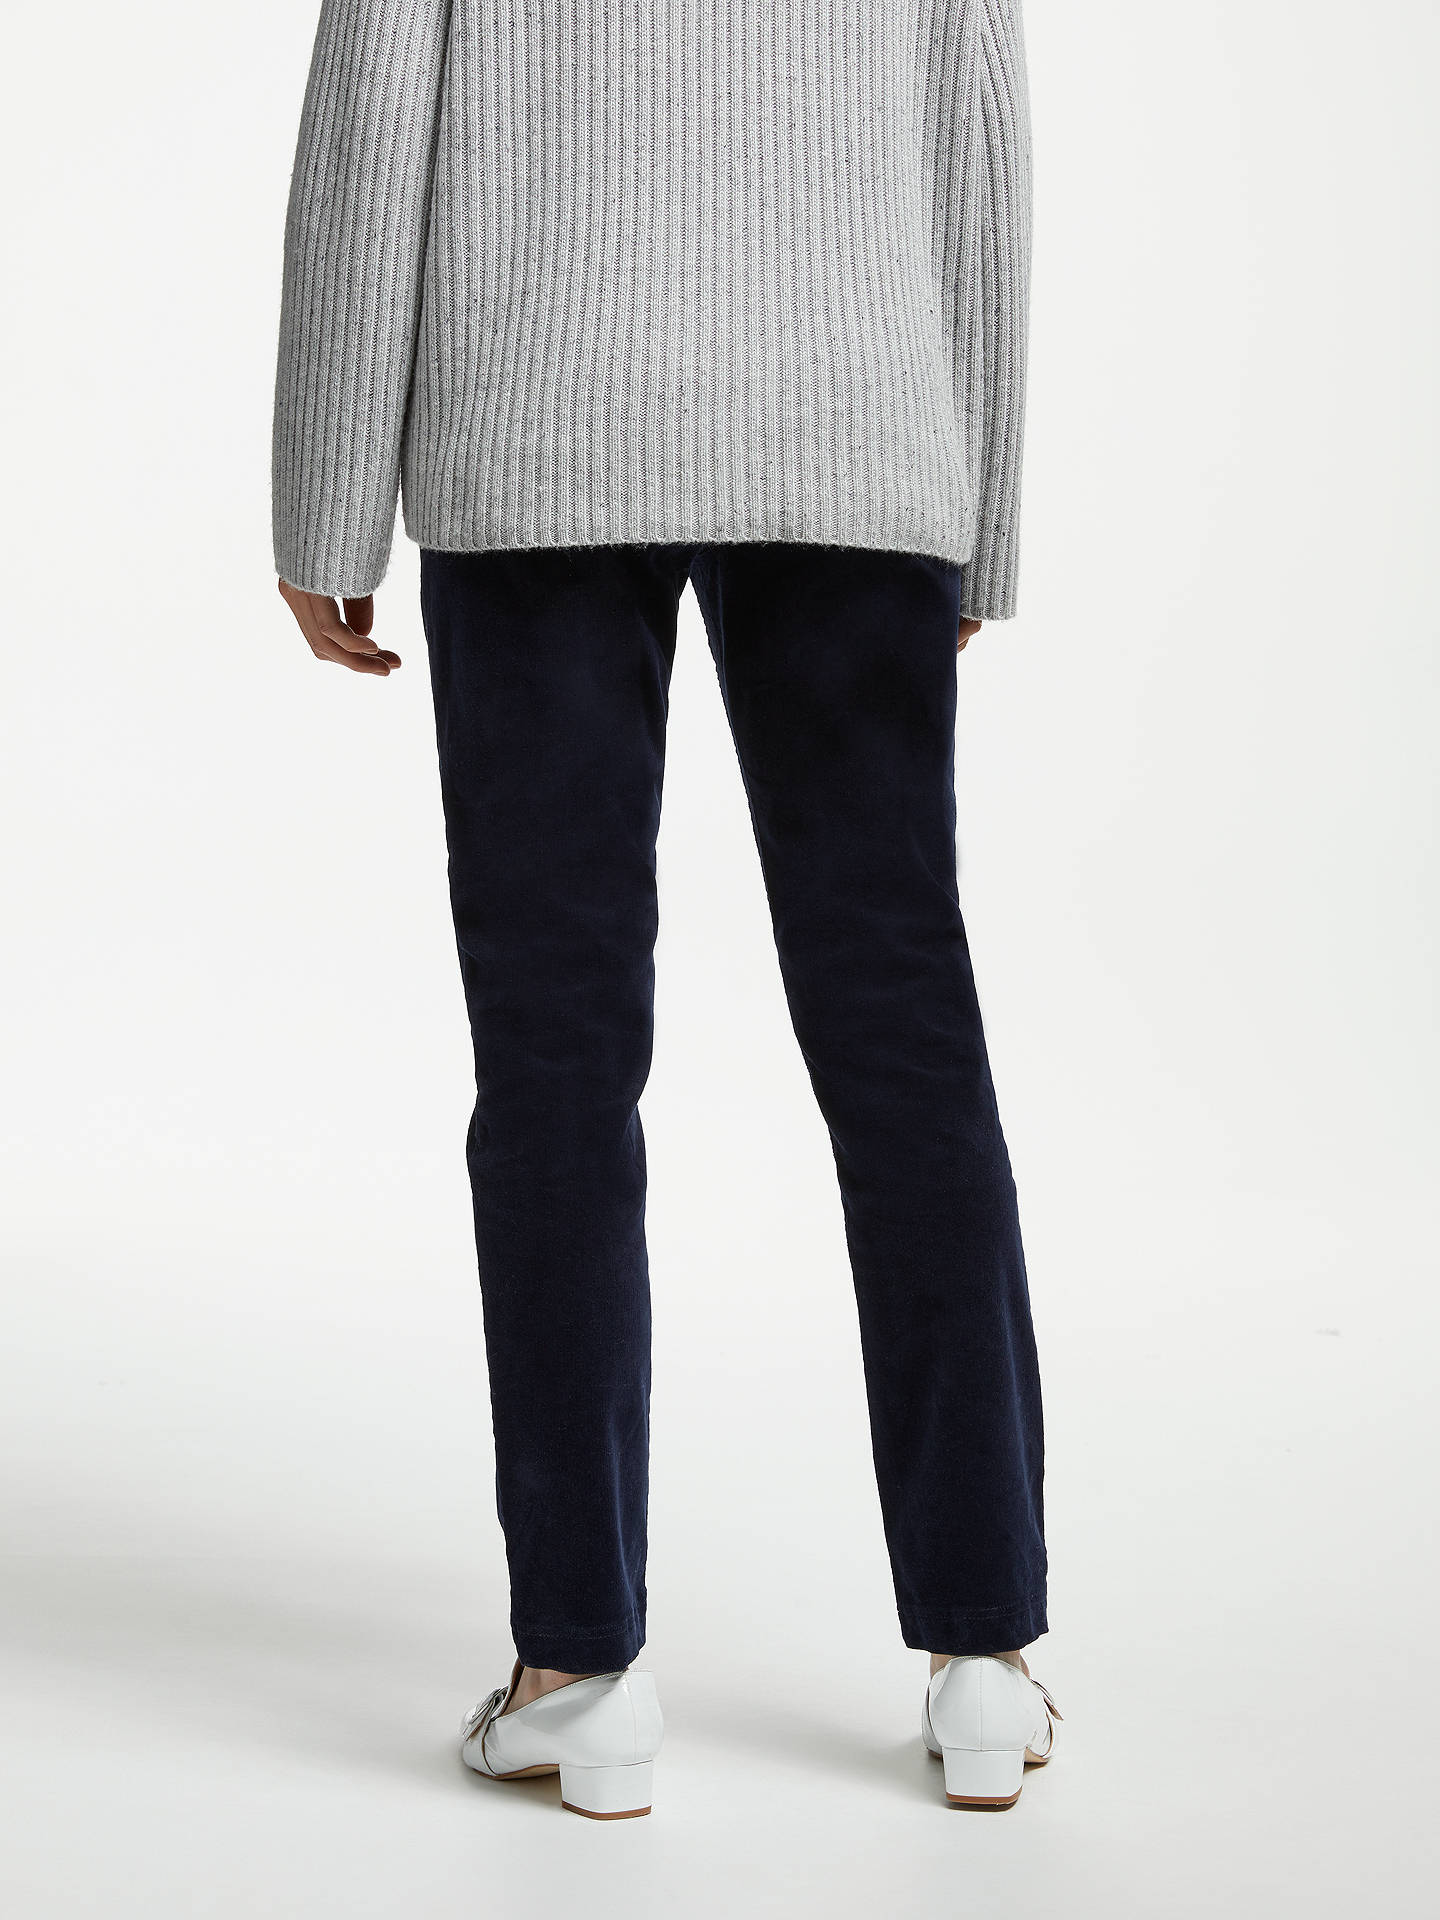 BuyJohn Lewis & Partners Cord Straight Leg Jeans, Navy, 8 Online at johnlewis.com